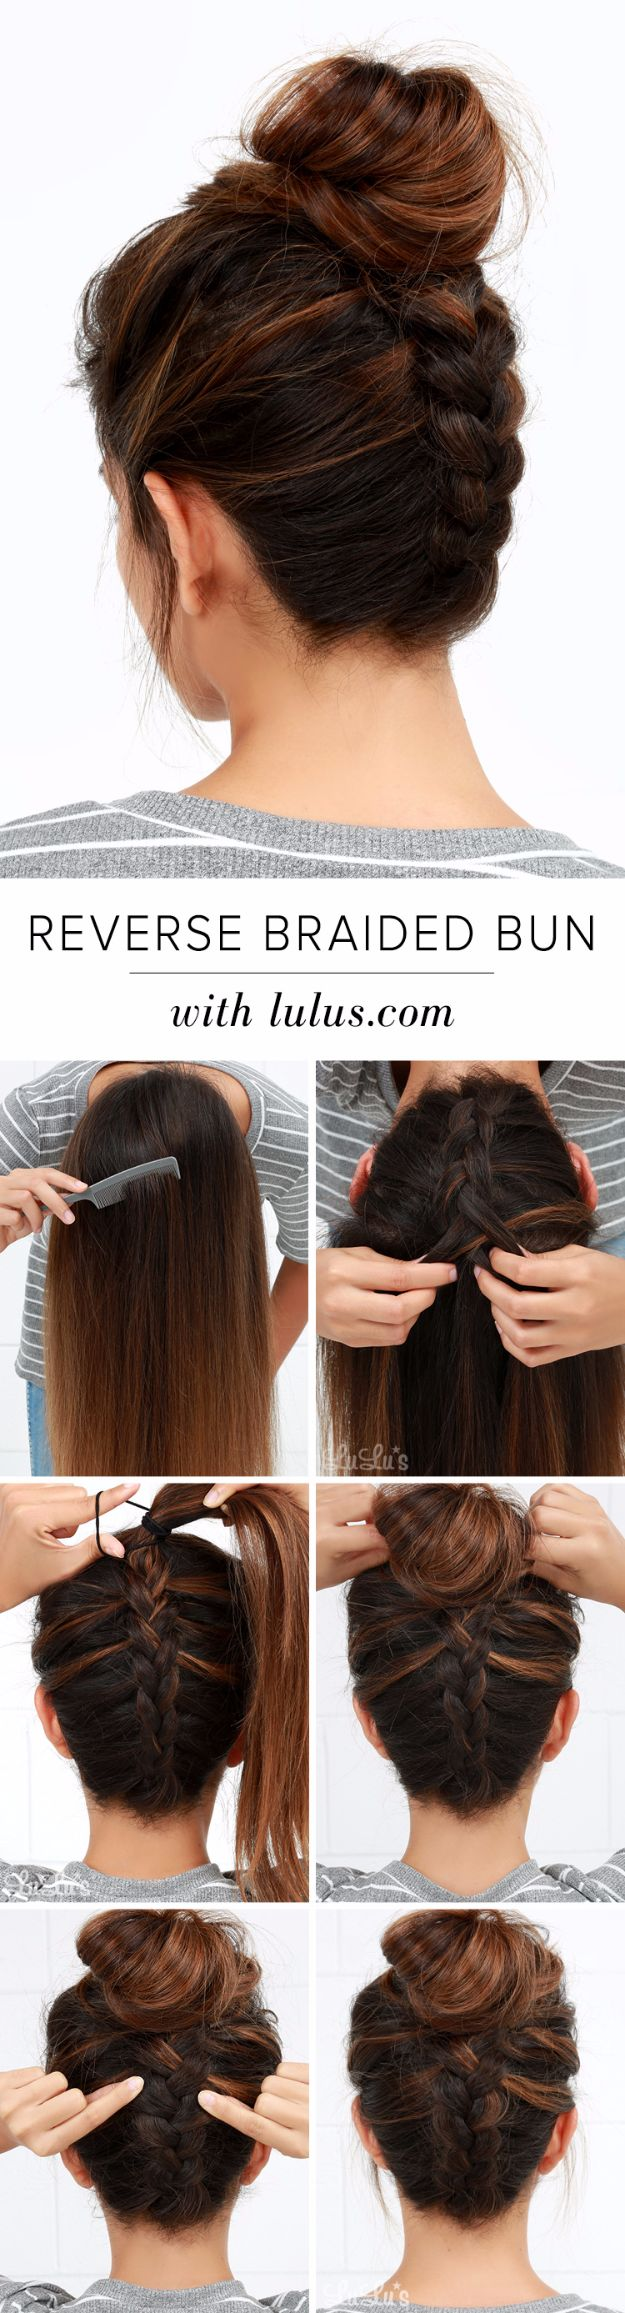 Easy Braids With Tutorials - Reverse Braided Bun - Cute Braiding Tutorials for Teens, Girls and Women - Easy Step by Step Braid Ideas - Quick Hairstyles for School - Creative Braids for Teenagers - Tutorial and Instructions for Hair Braiding http://diyprojectsforteens.com/easy-braids-tutorials